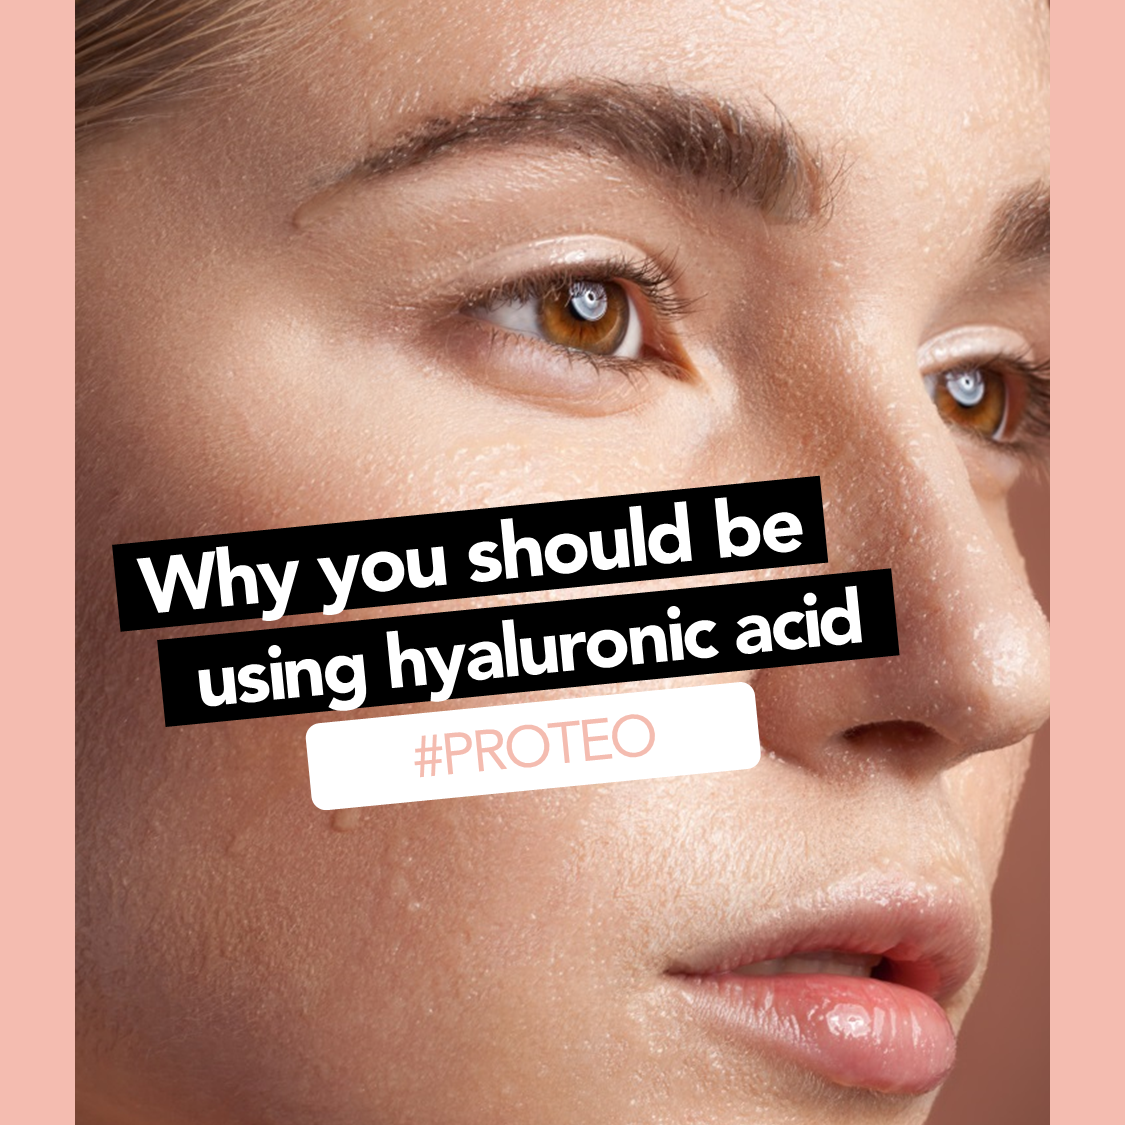 Why You Should Be Using Hyaluronic Acid.